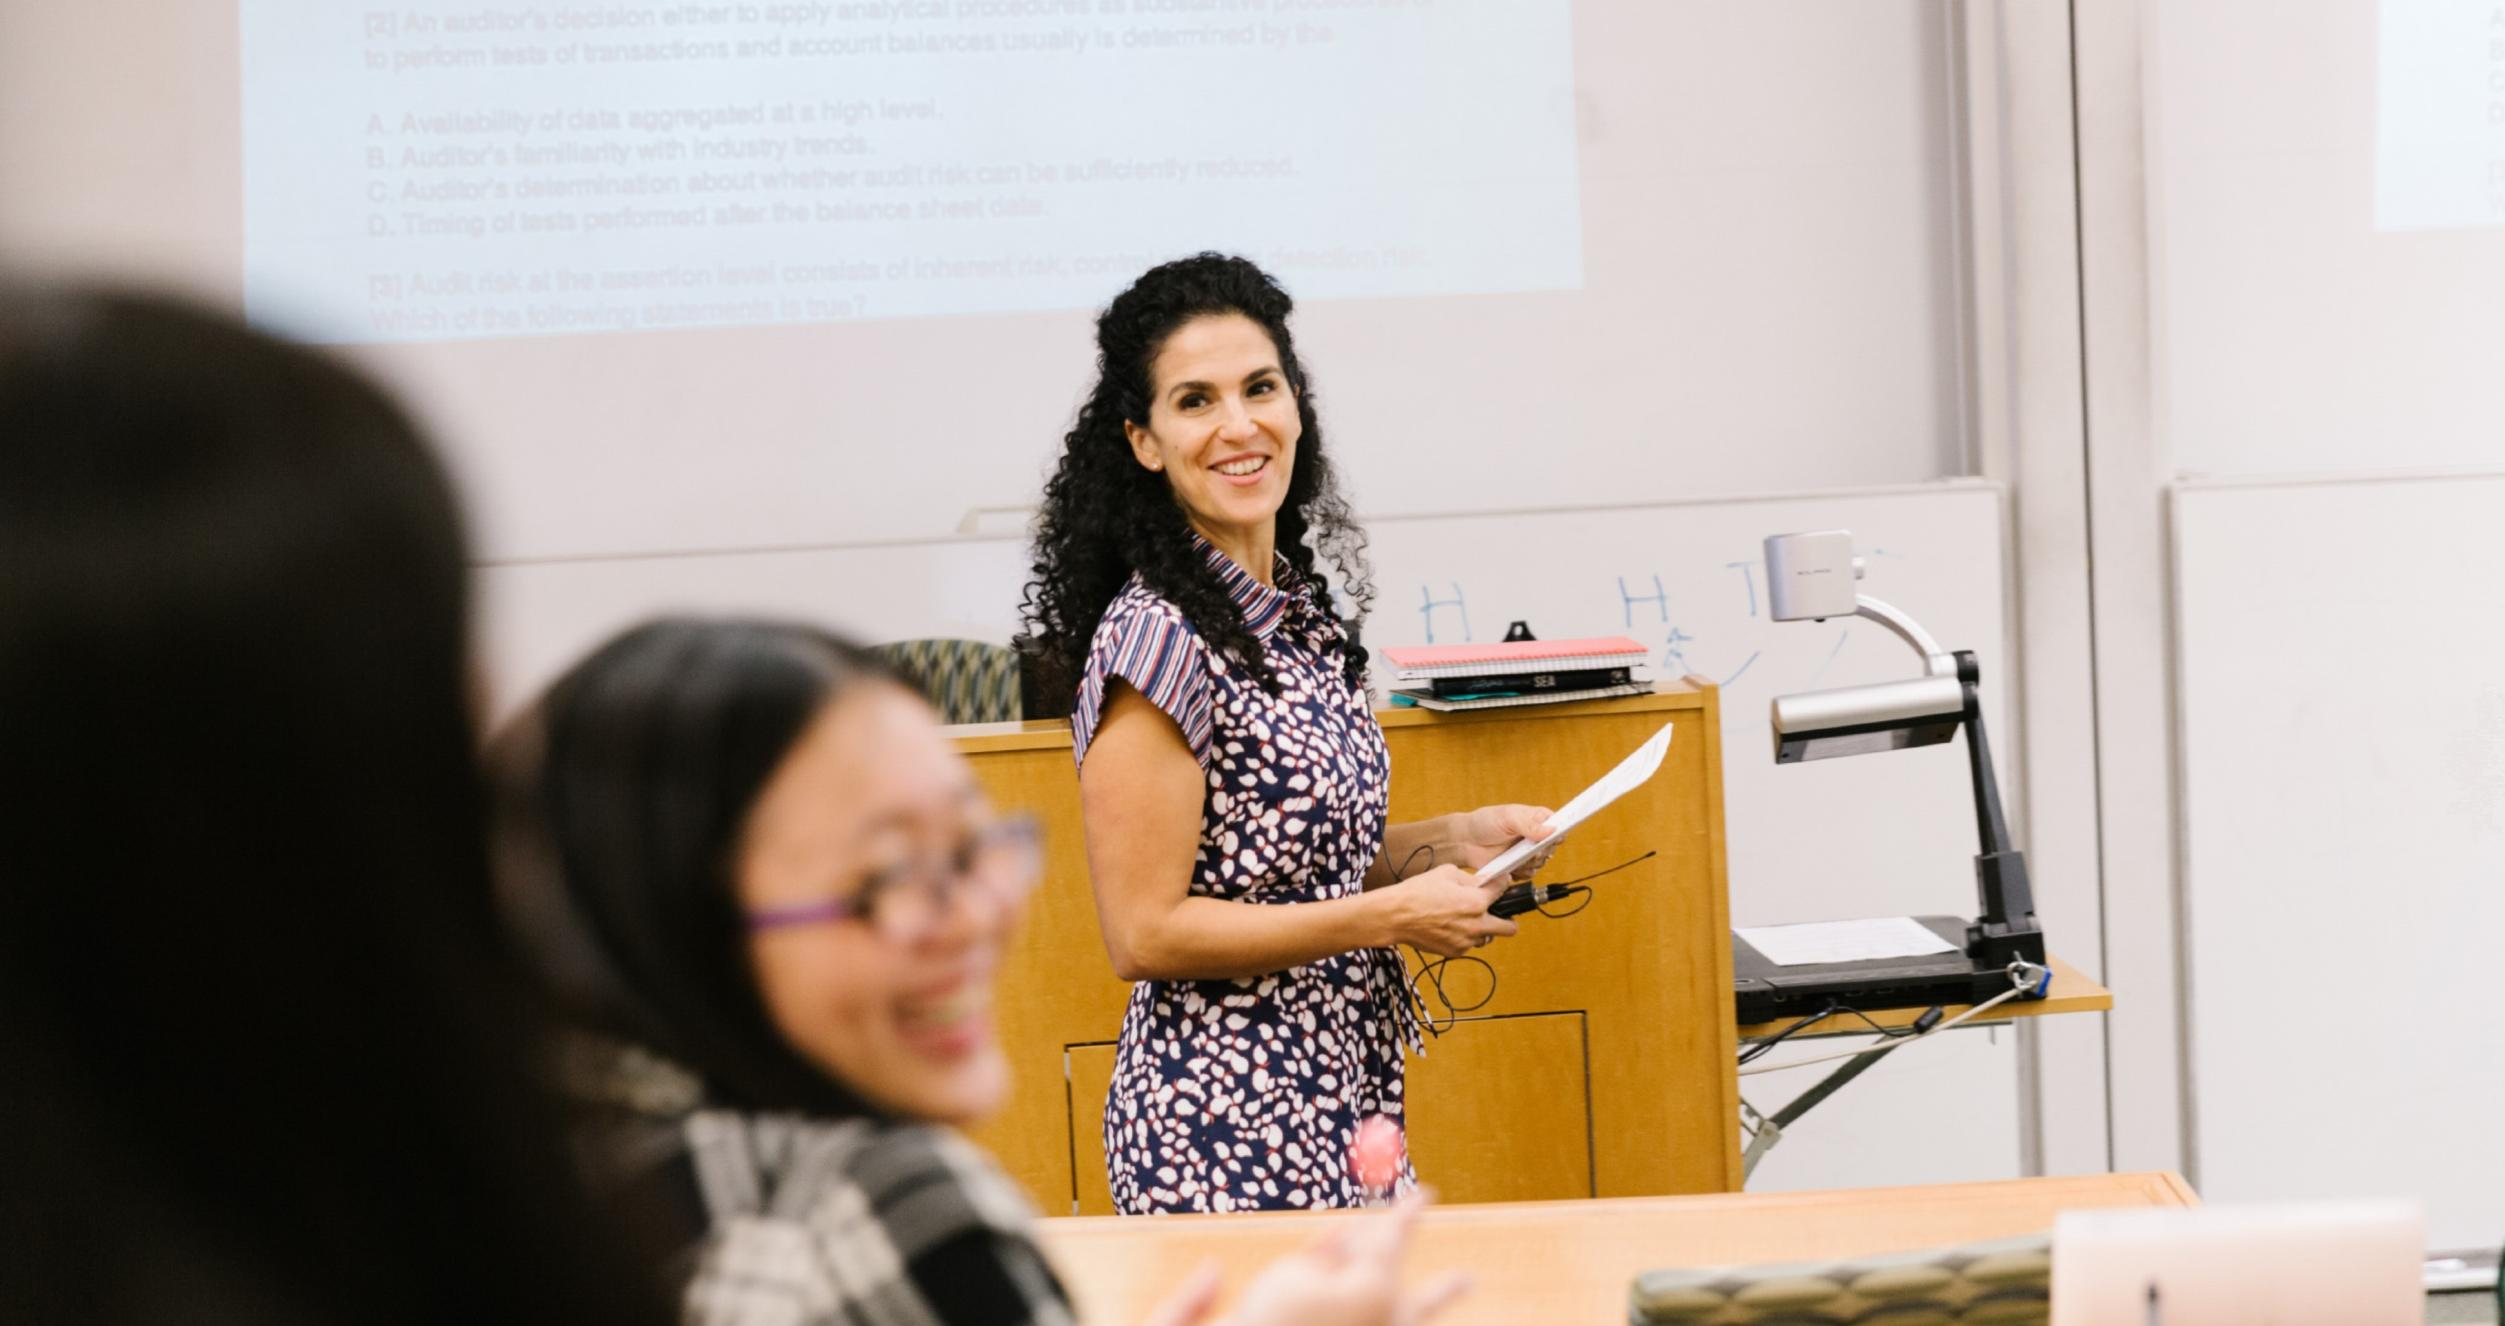 Professor Amal Shehata teaches in a classrom